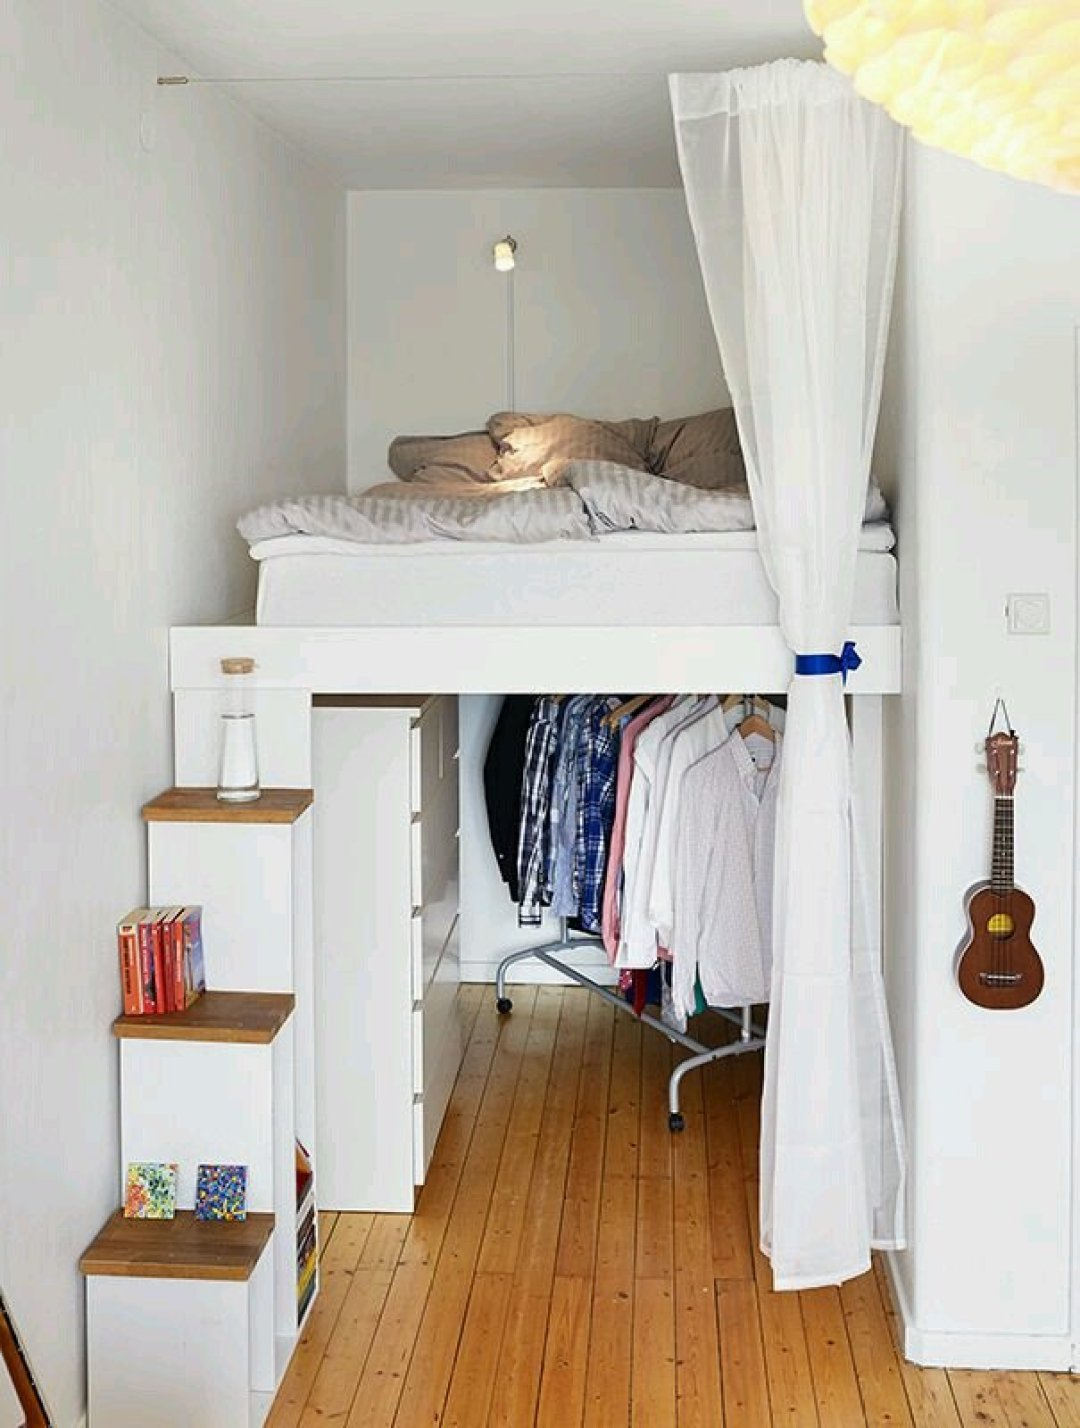 10 creative bed ideas ideal for small spaces for Creative beds for small spaces